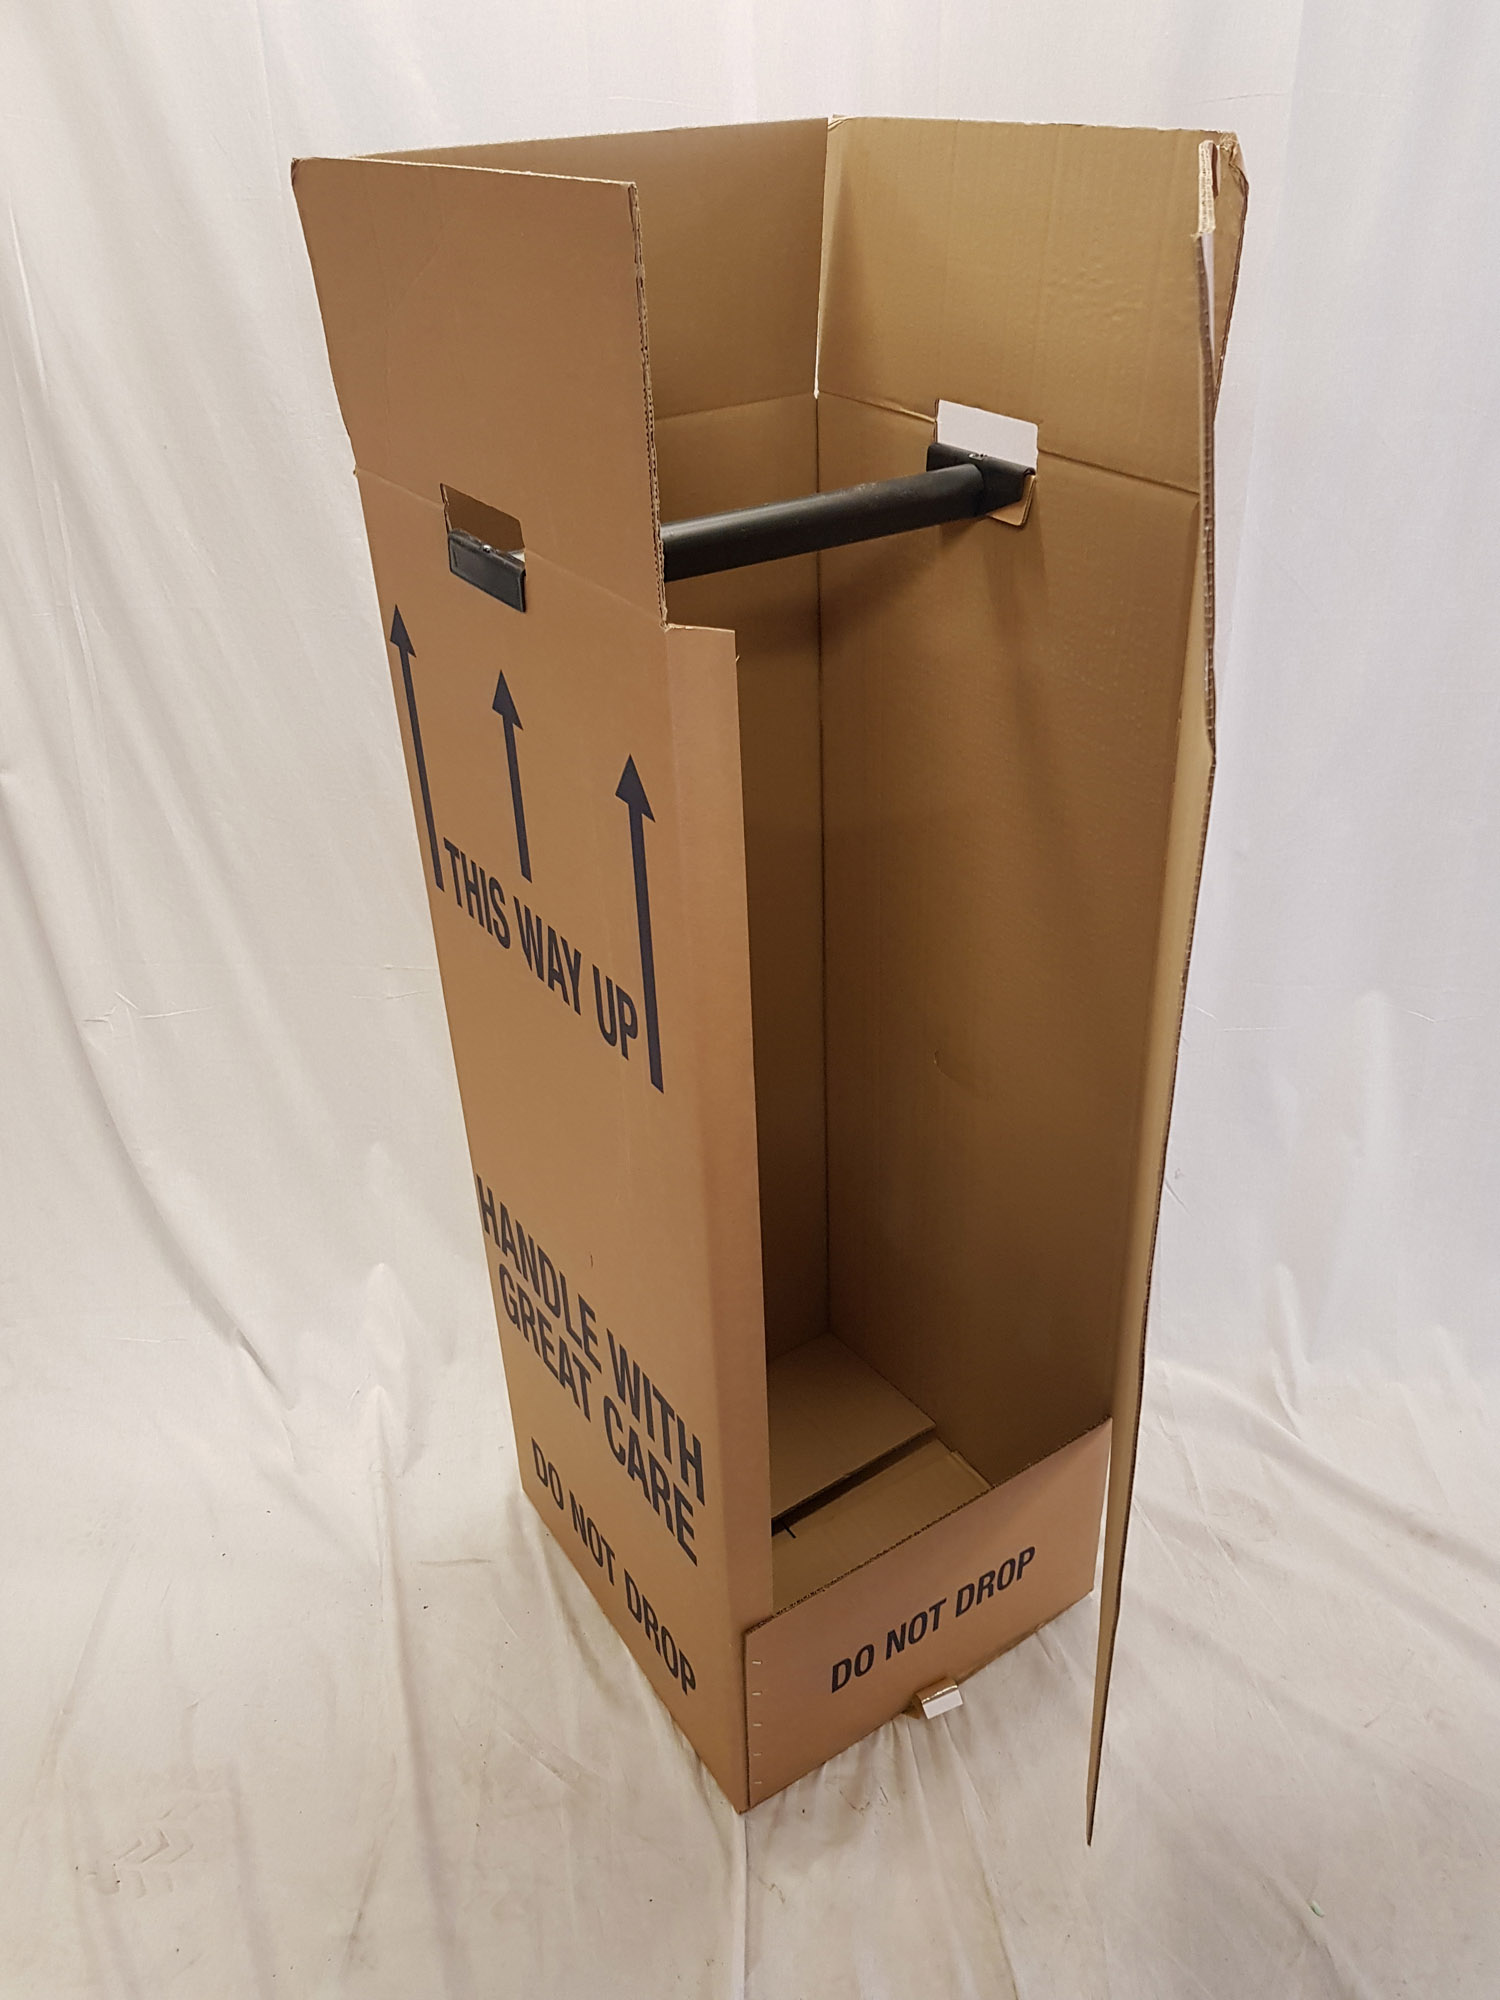 Wardrobe Box House Moving Strong Cardboard Boxes Cheap